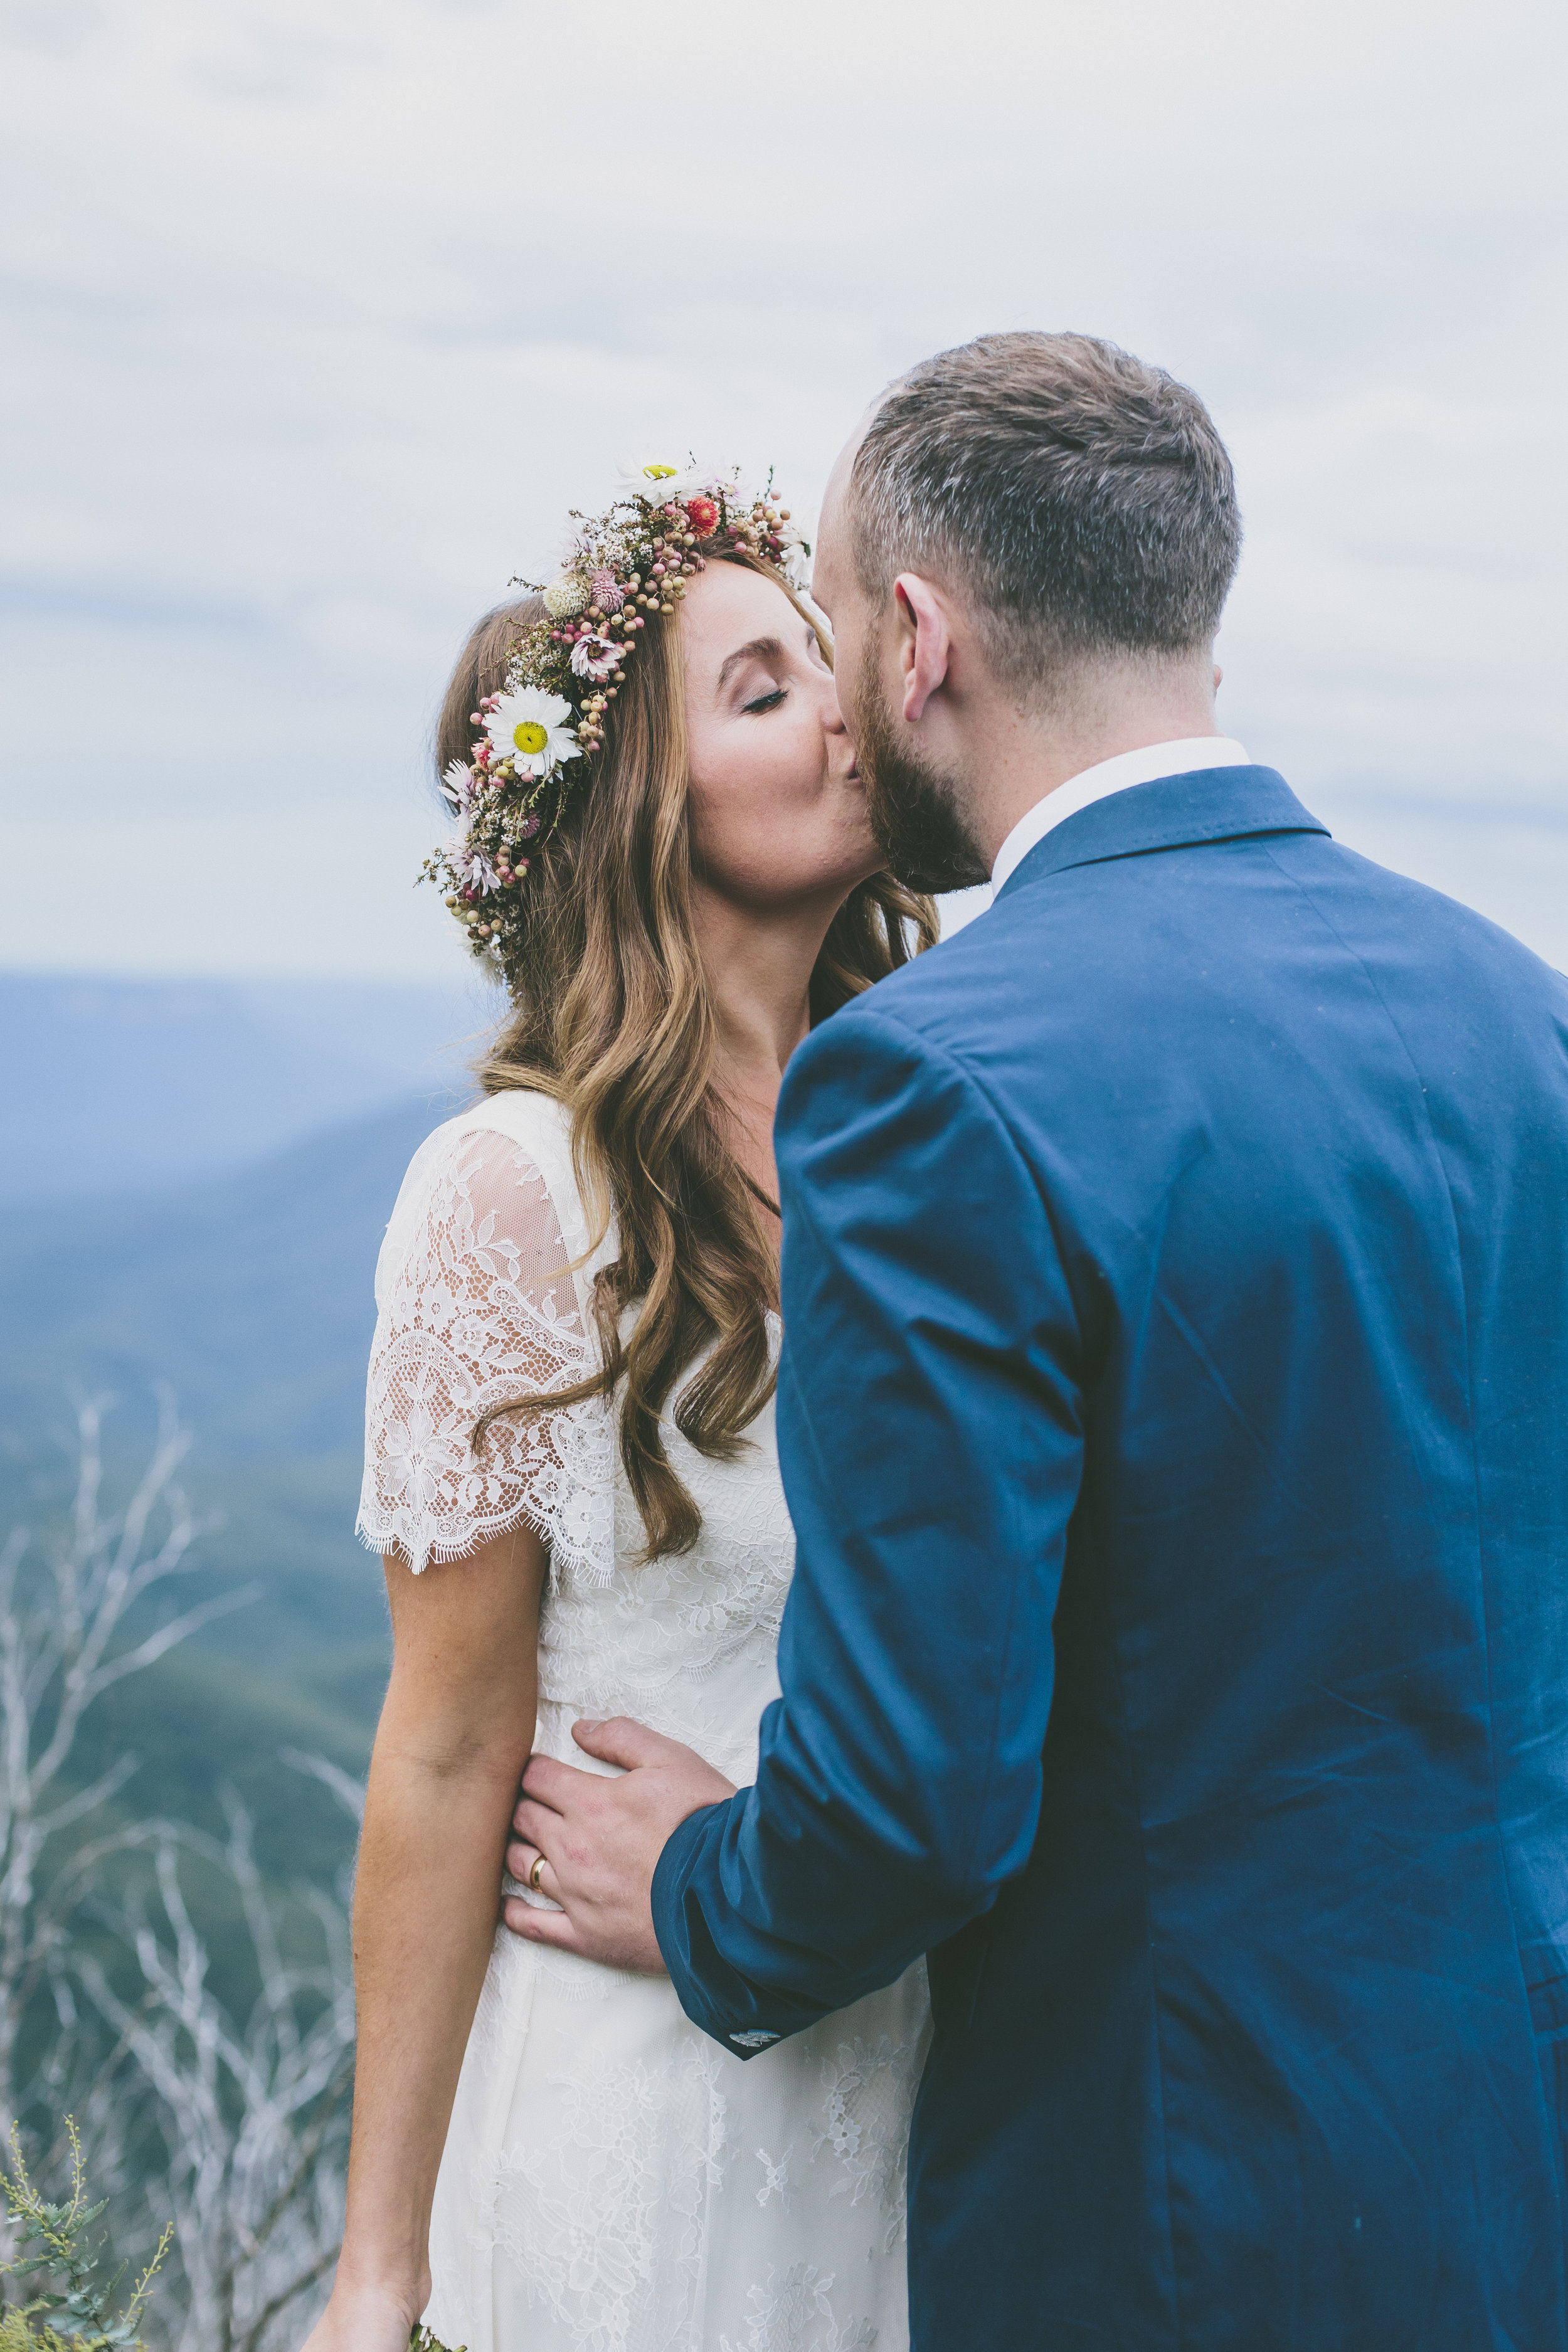 Check out the Real Wedding articles on The Little White Wedding Guide for the ultimate wedding inspiration.